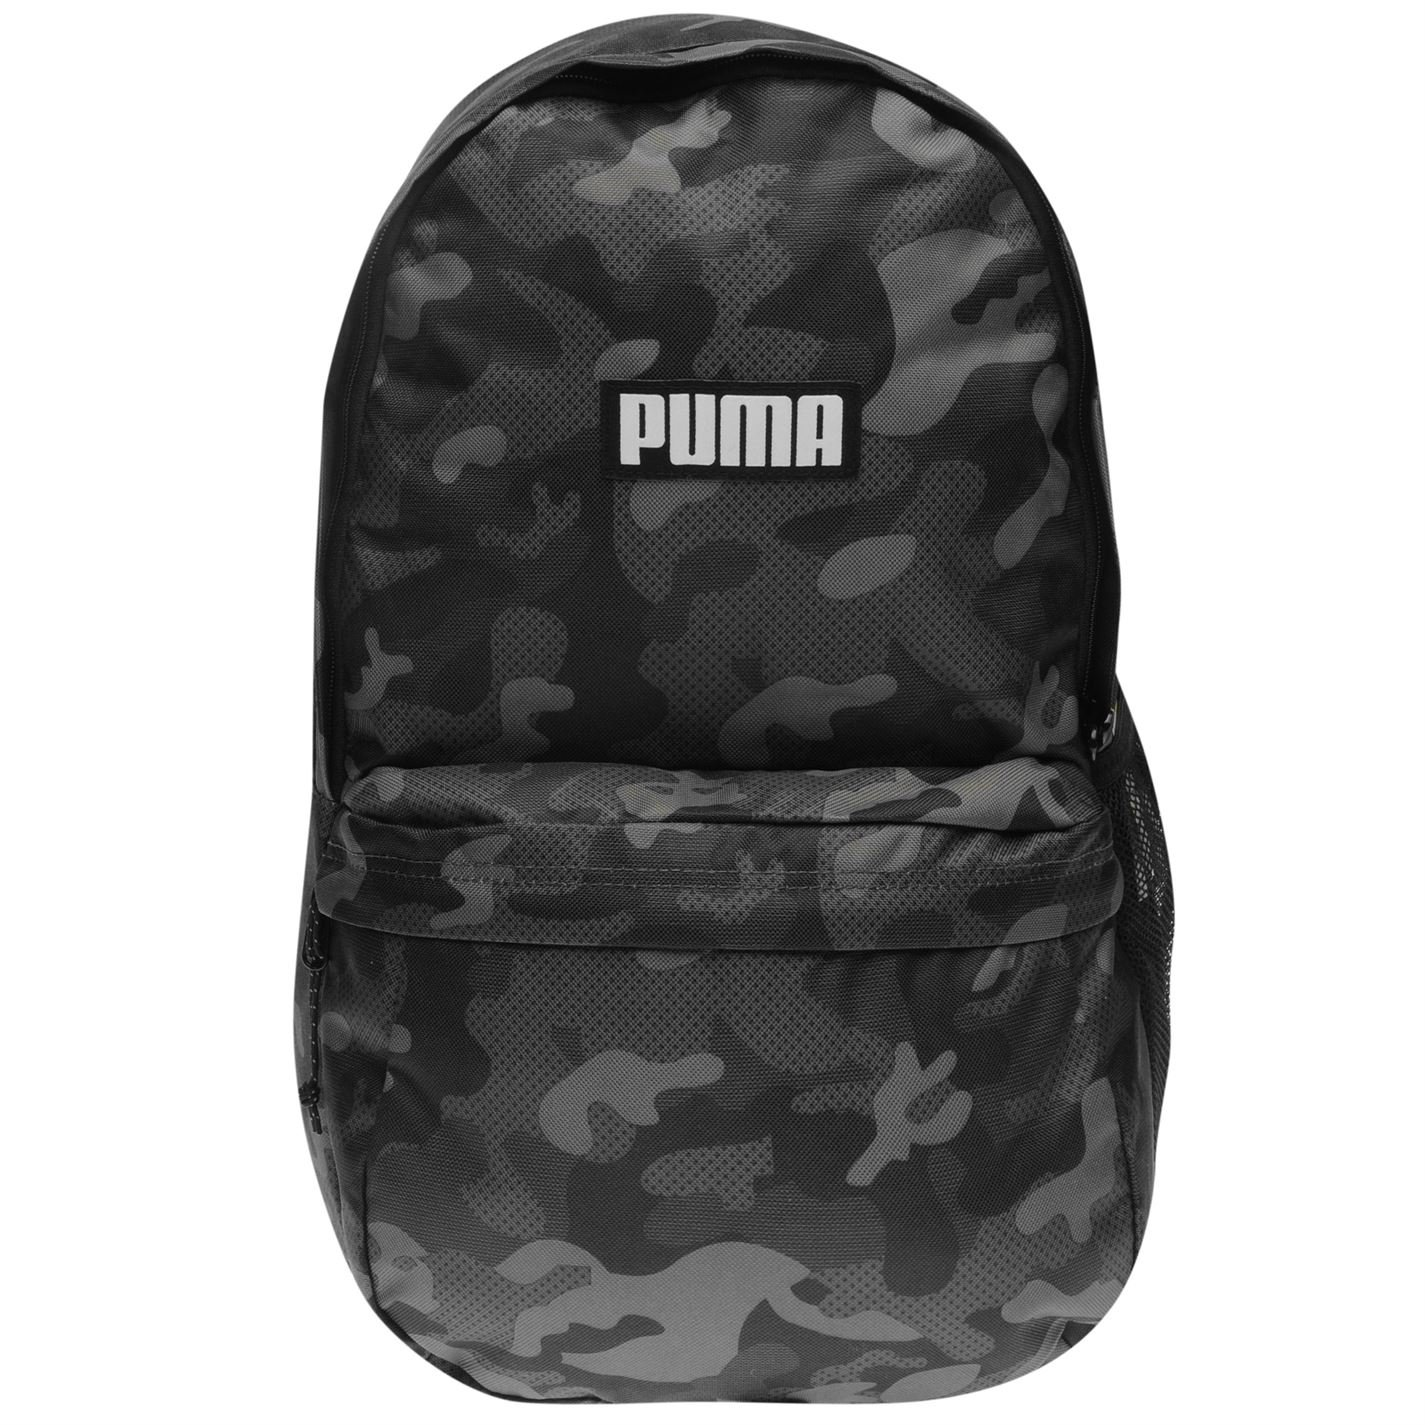 d908abf9bd6c7b Puma Unisex AOP Academy Backpack Zip Mesh Sport Padded: Amazon.co.uk:  Clothing